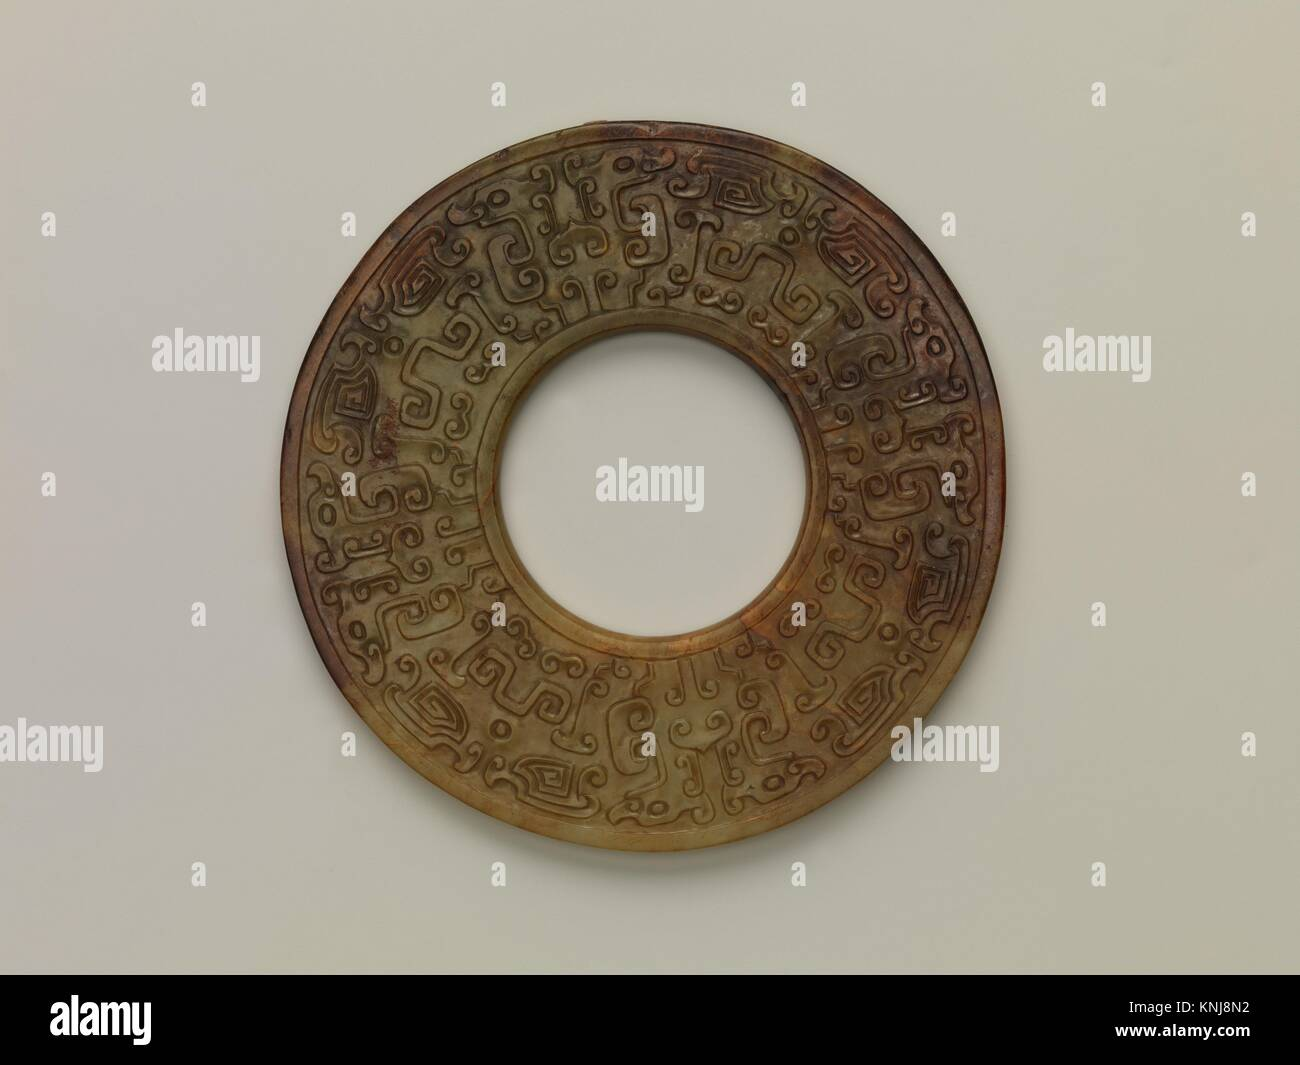 Annular Disk with Carved Designs. Period: Song (960-1279)-Qing (1644-1911) dynasty; Culture: China; Medium: Jade Stock Photo